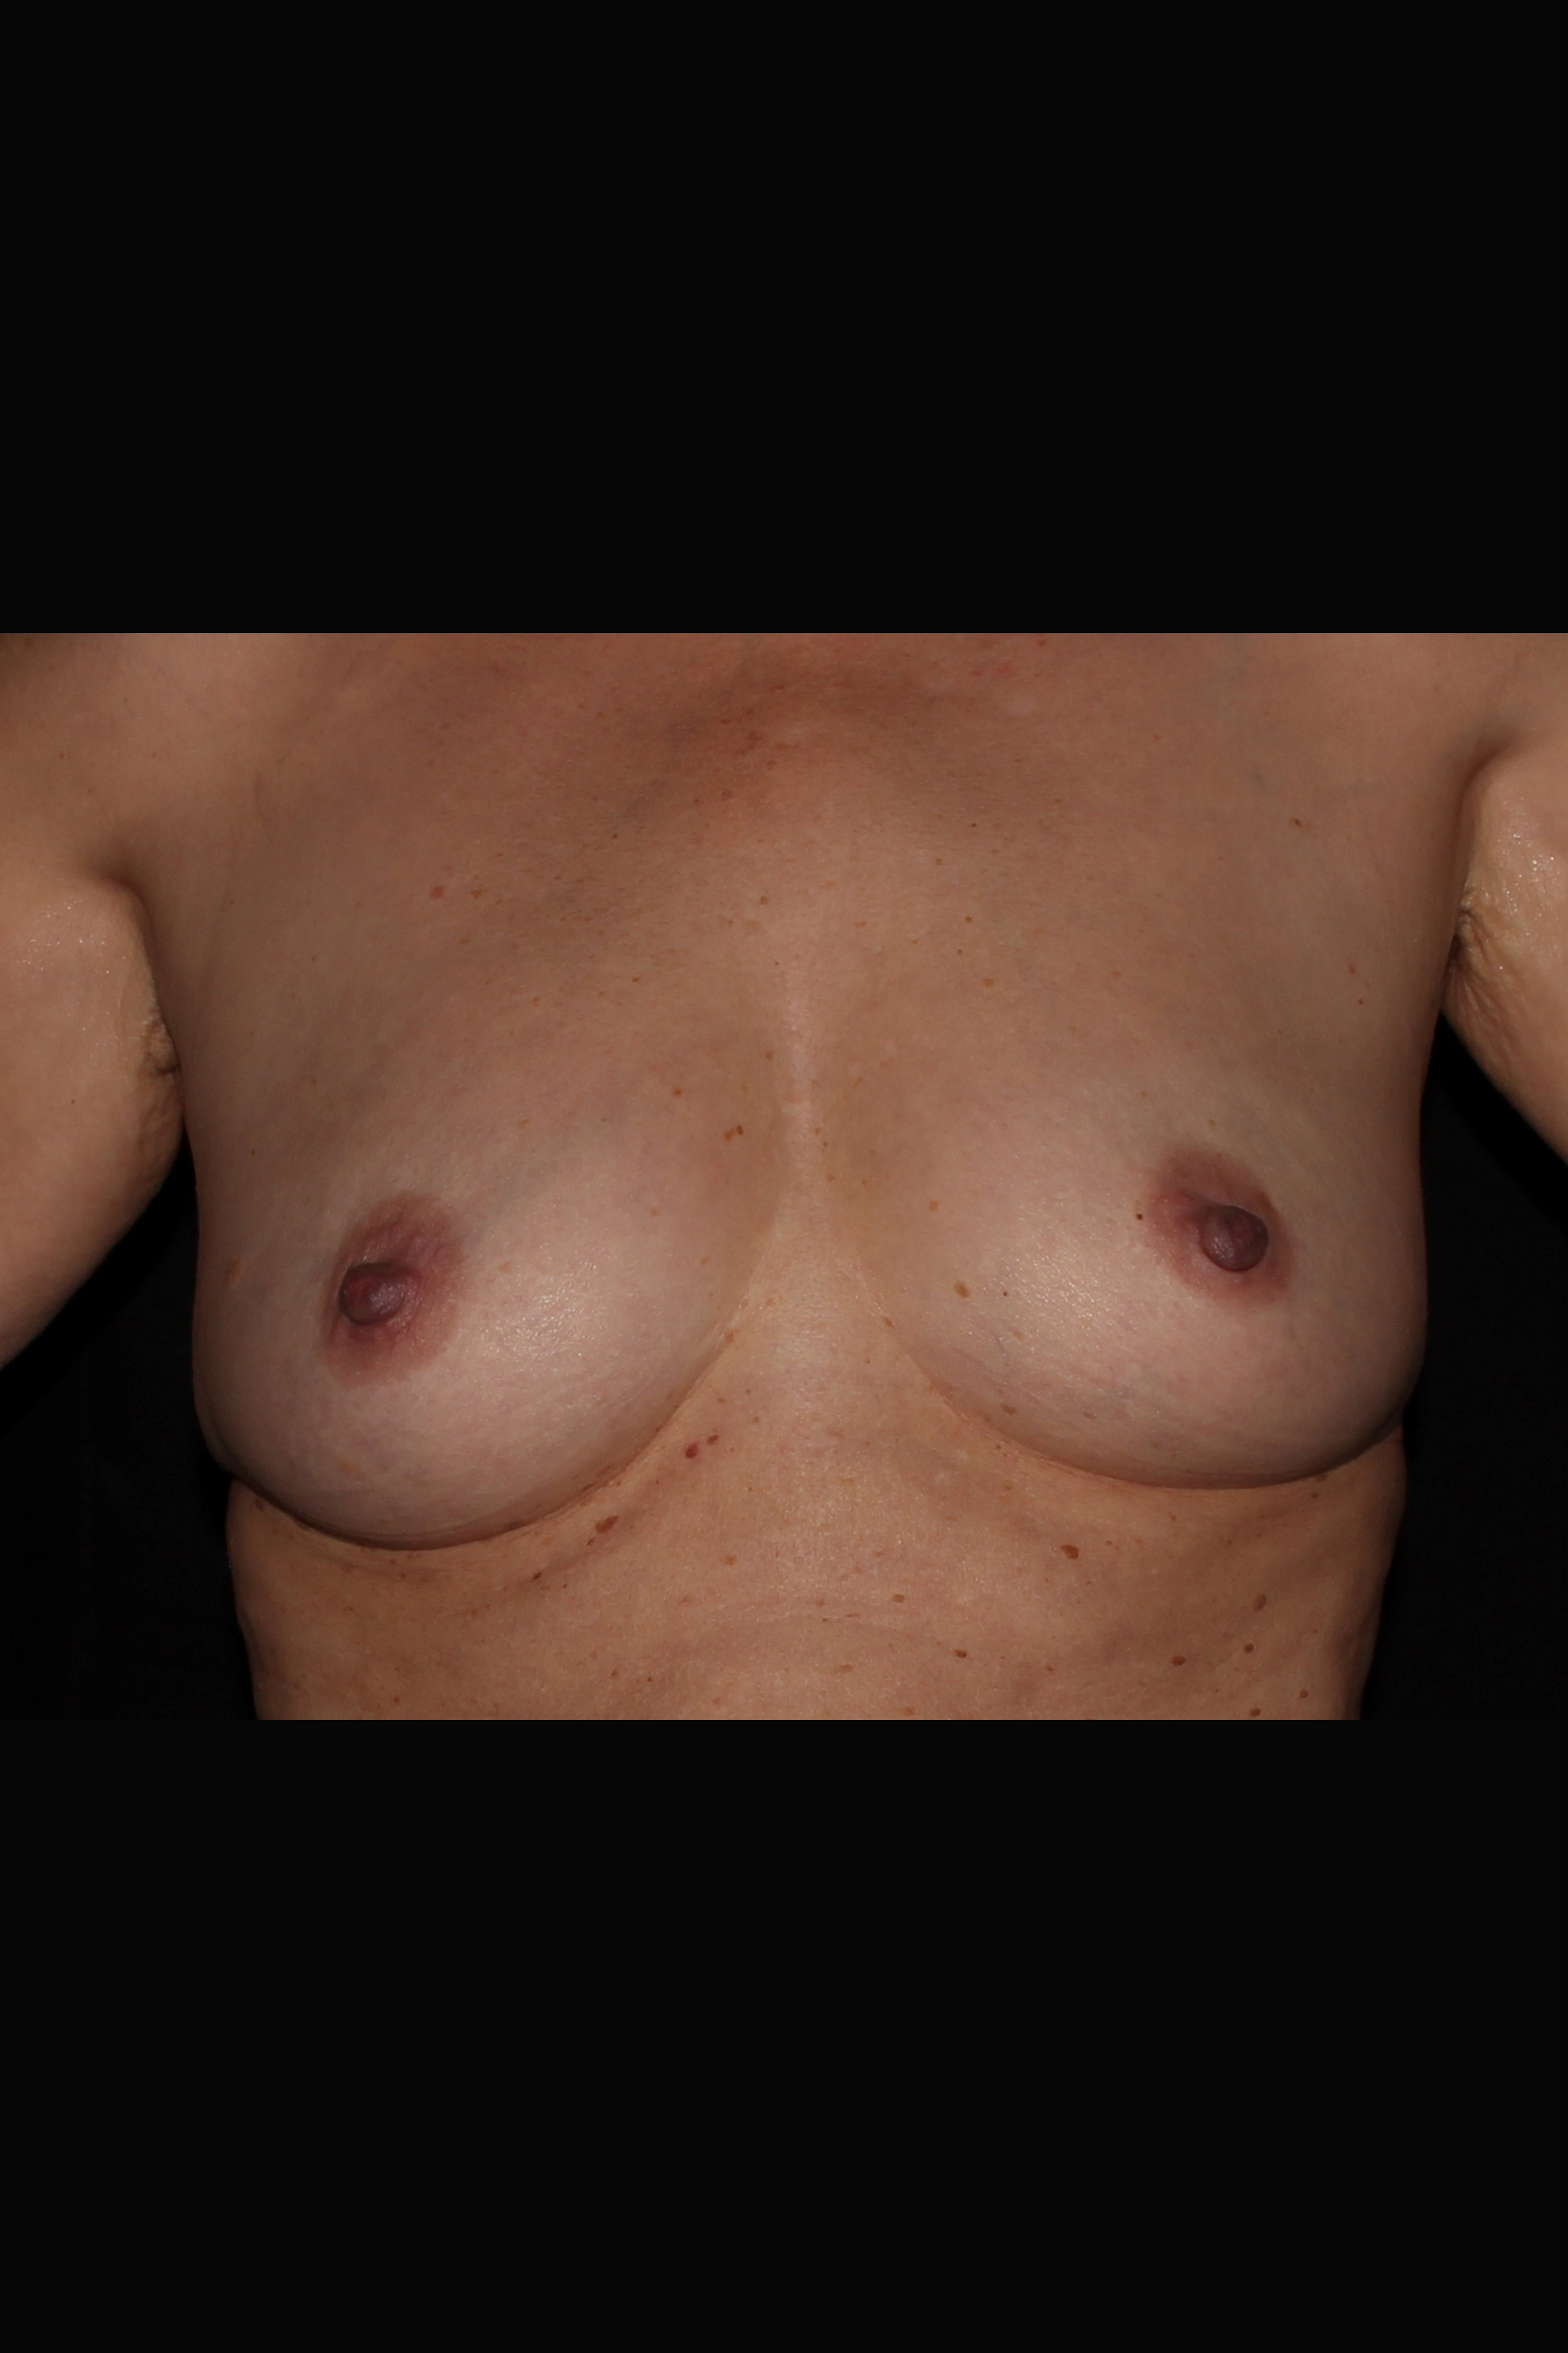 Before Fat Transfer to Breast - Fat transfer to the breast